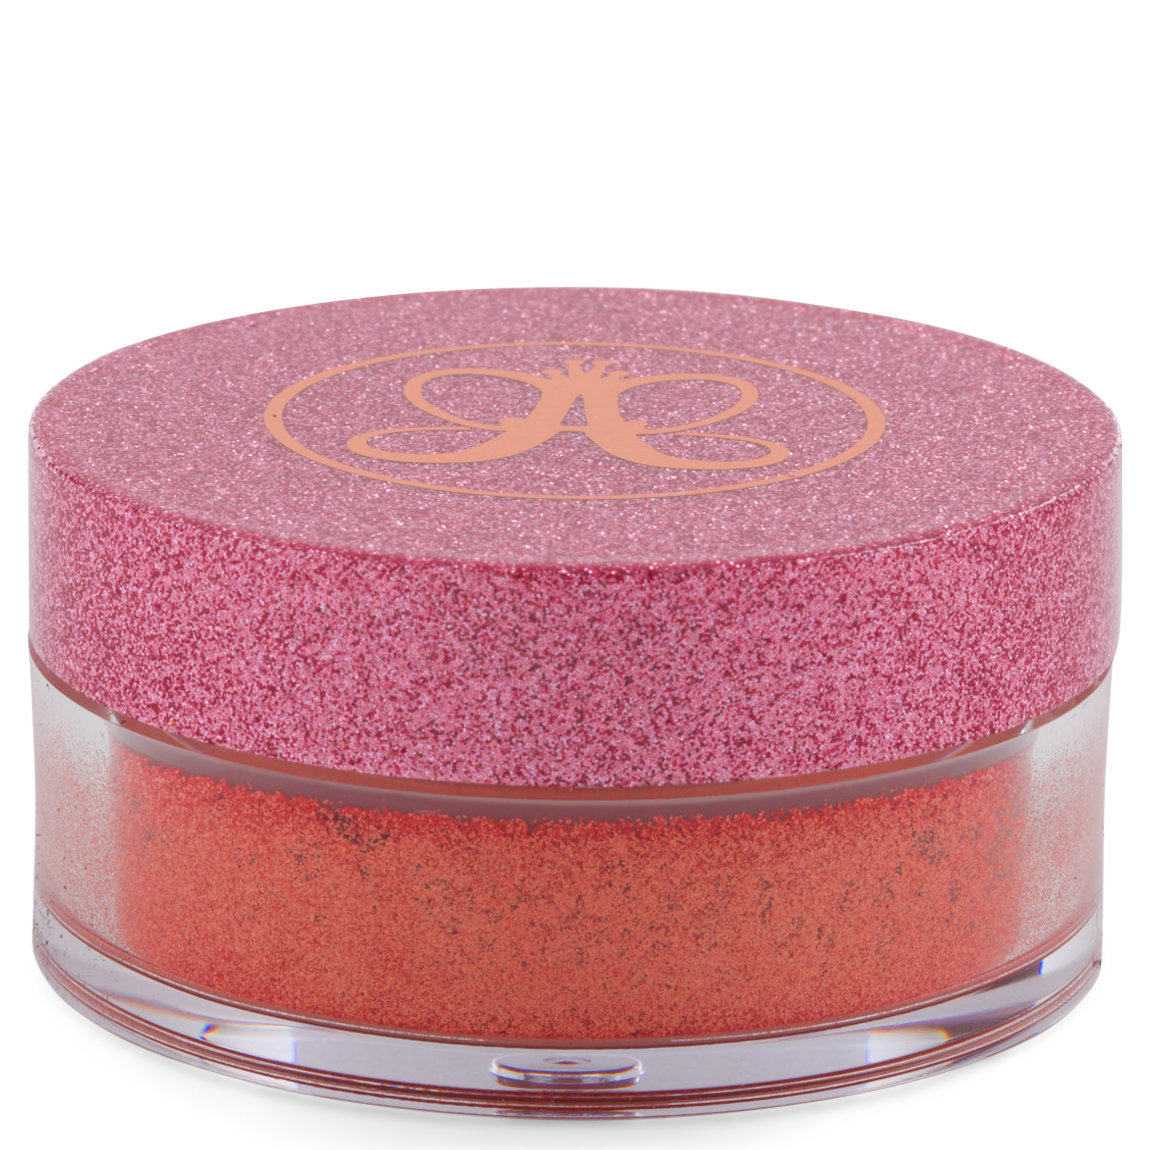 Anastasia Beverly Hills Loose Highlighter Peach Fizz